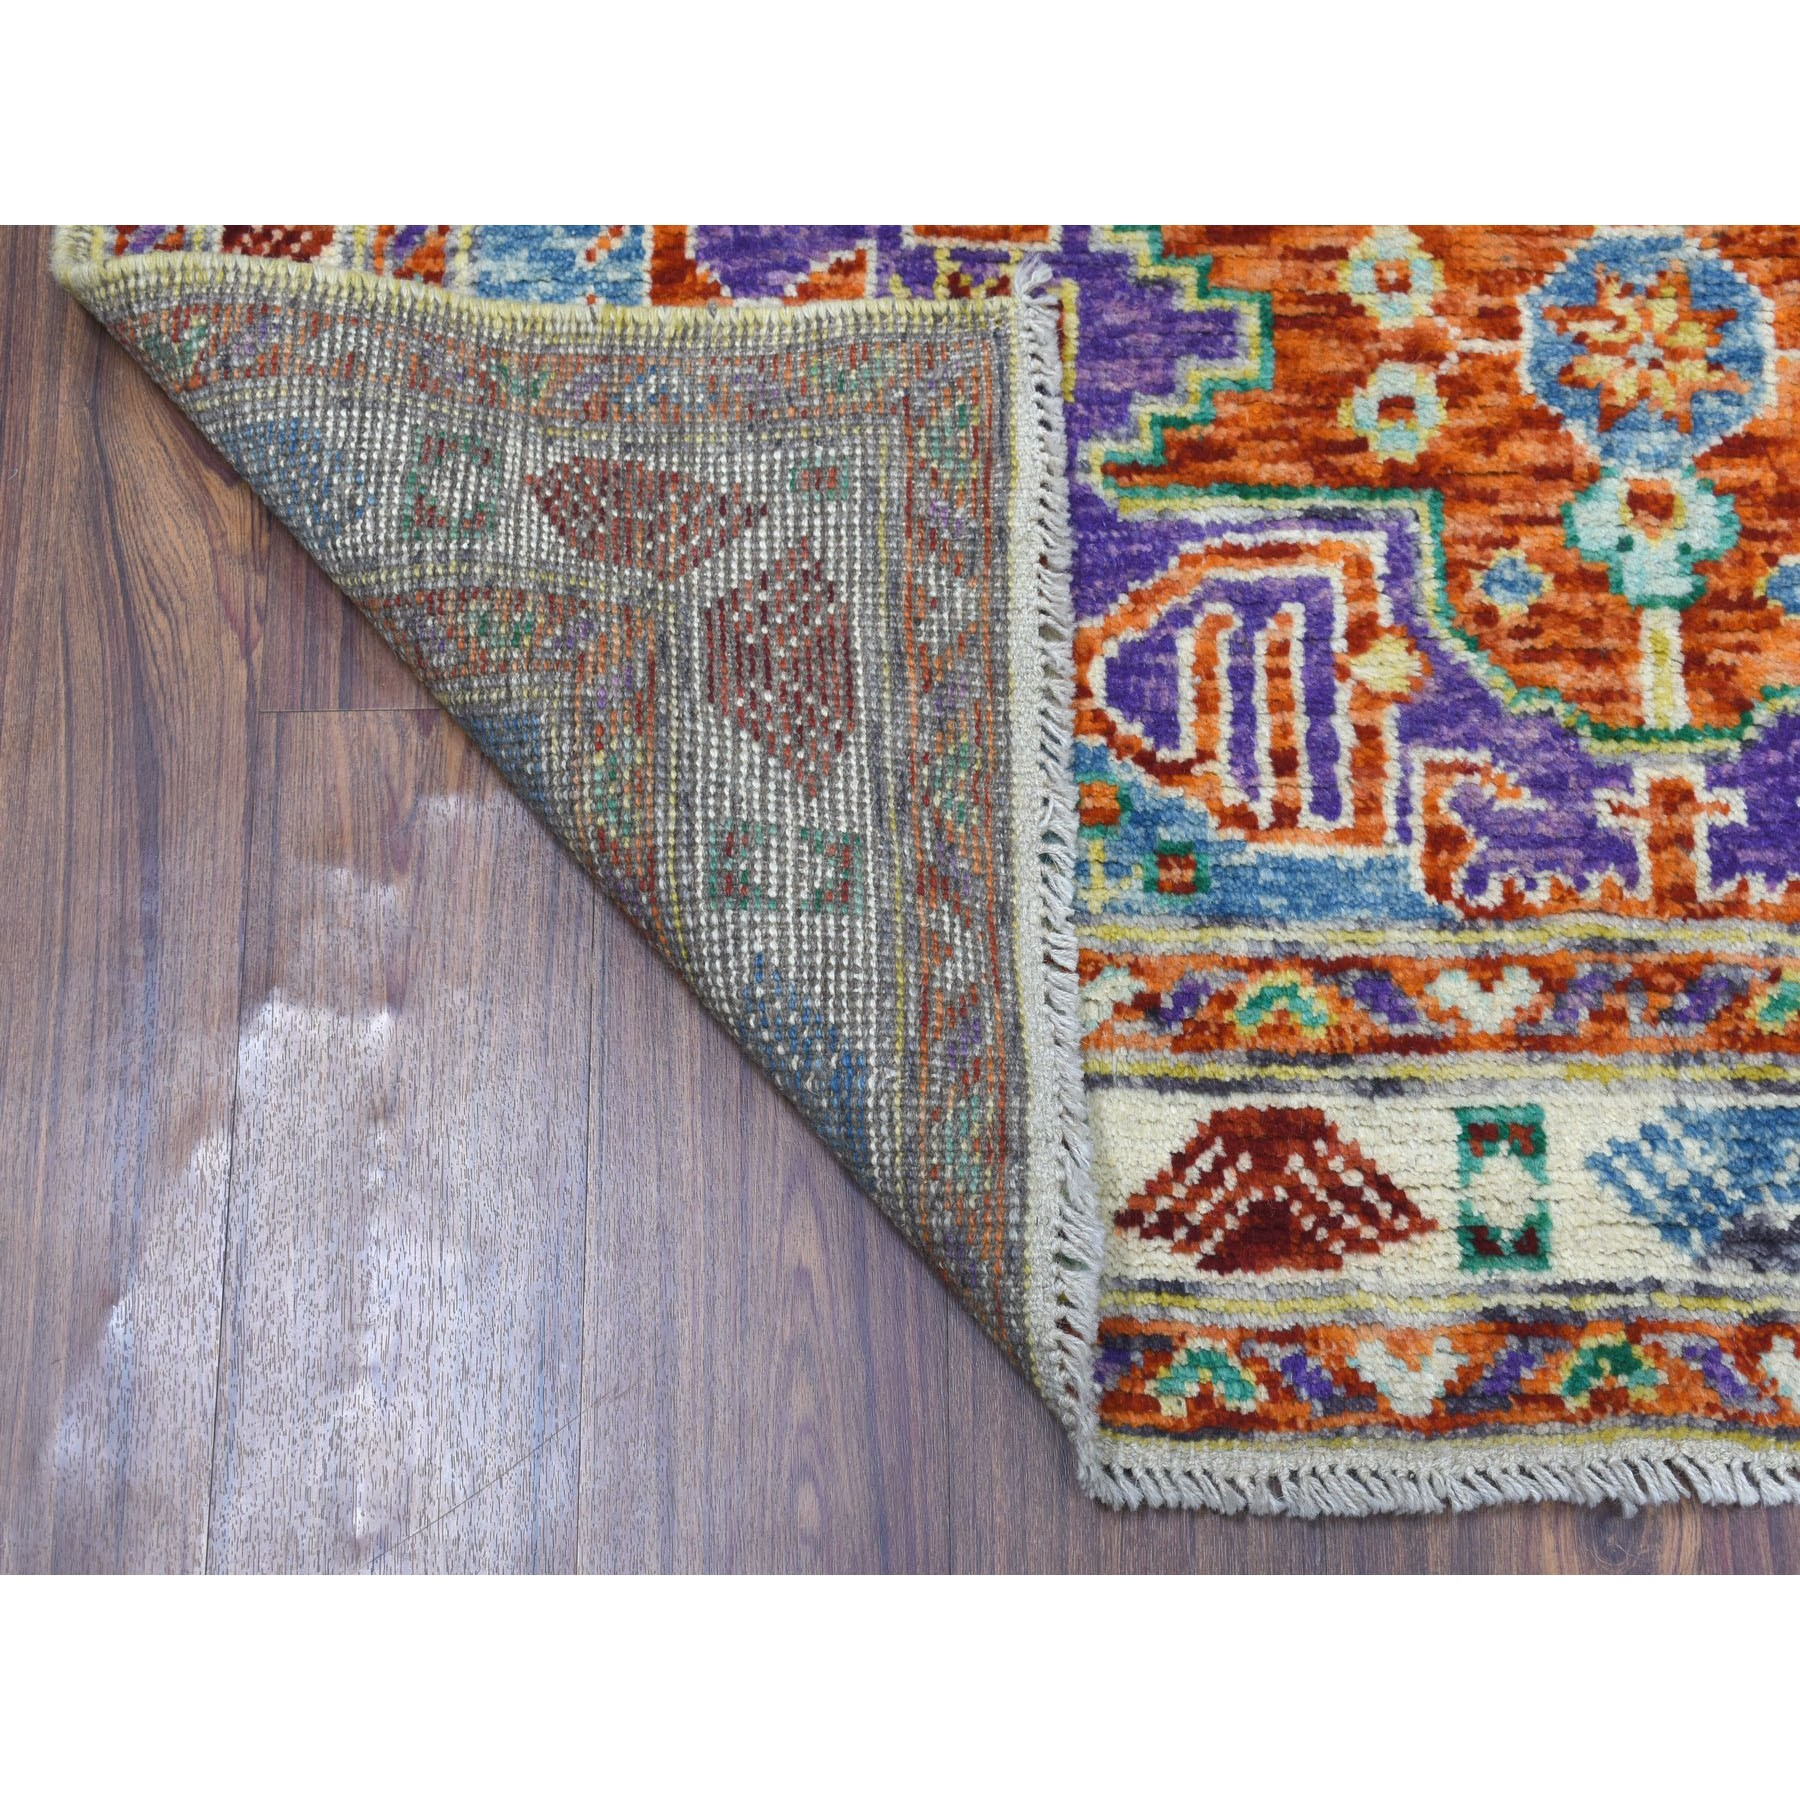 "5'x6'6"" Natural Dyes Colorful Afghan Baluch Geometric Design Hand Woven 100% Wool Oriental Rug"